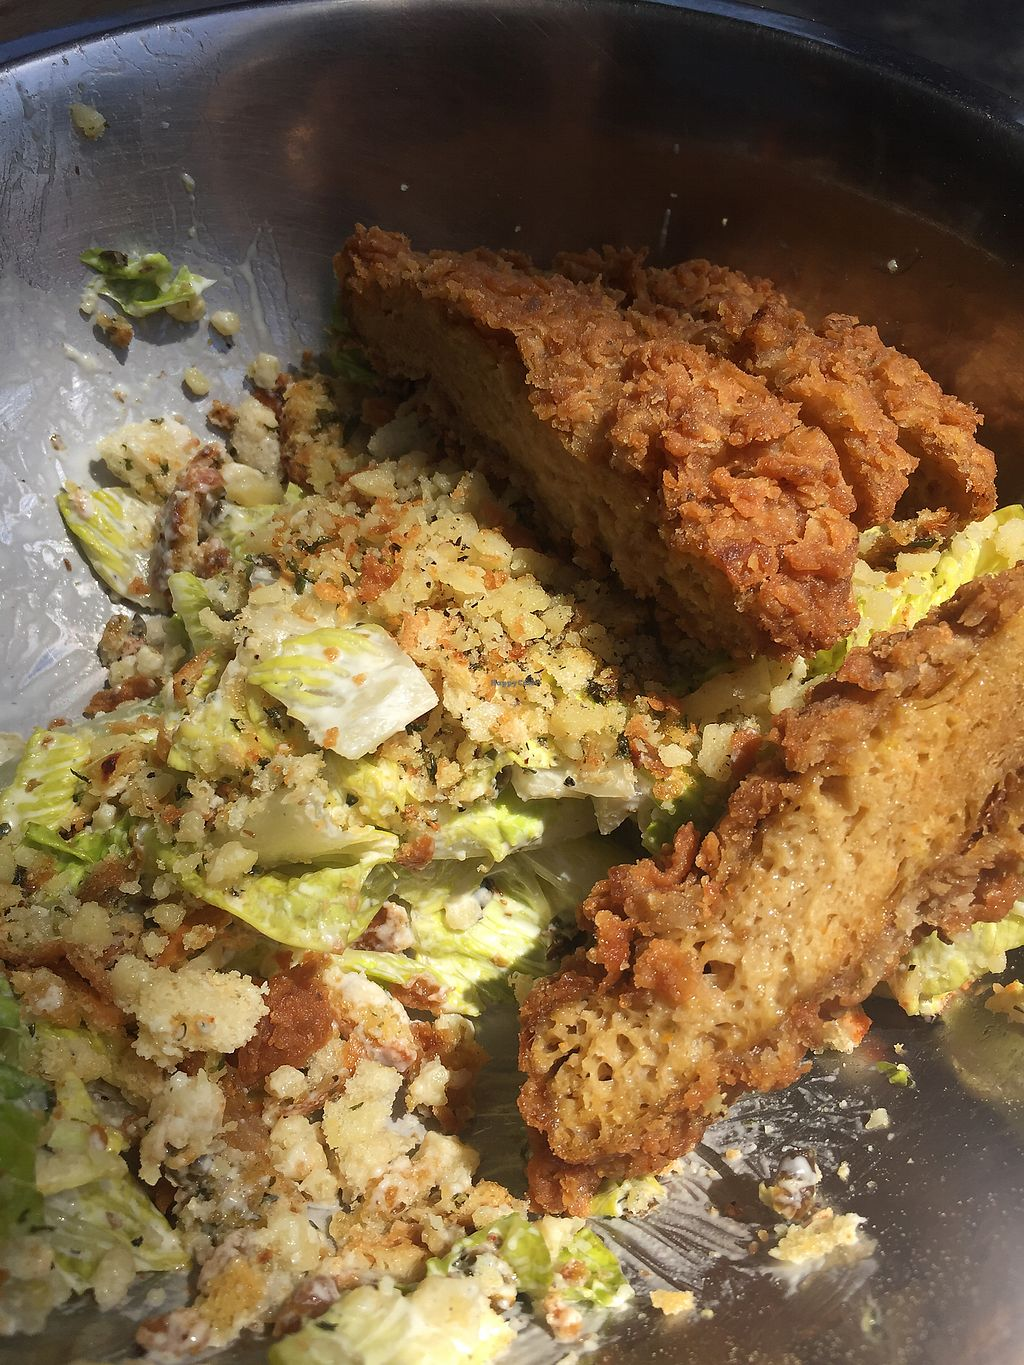 "Photo of The Butcher's Son  by <a href=""/members/profile/Sakurasinclair"">Sakurasinclair</a> <br/> Cesar salad with fried chicken <br/> August 16, 2017  - <a href='/contact/abuse/image/70334/293388'>Report</a>"